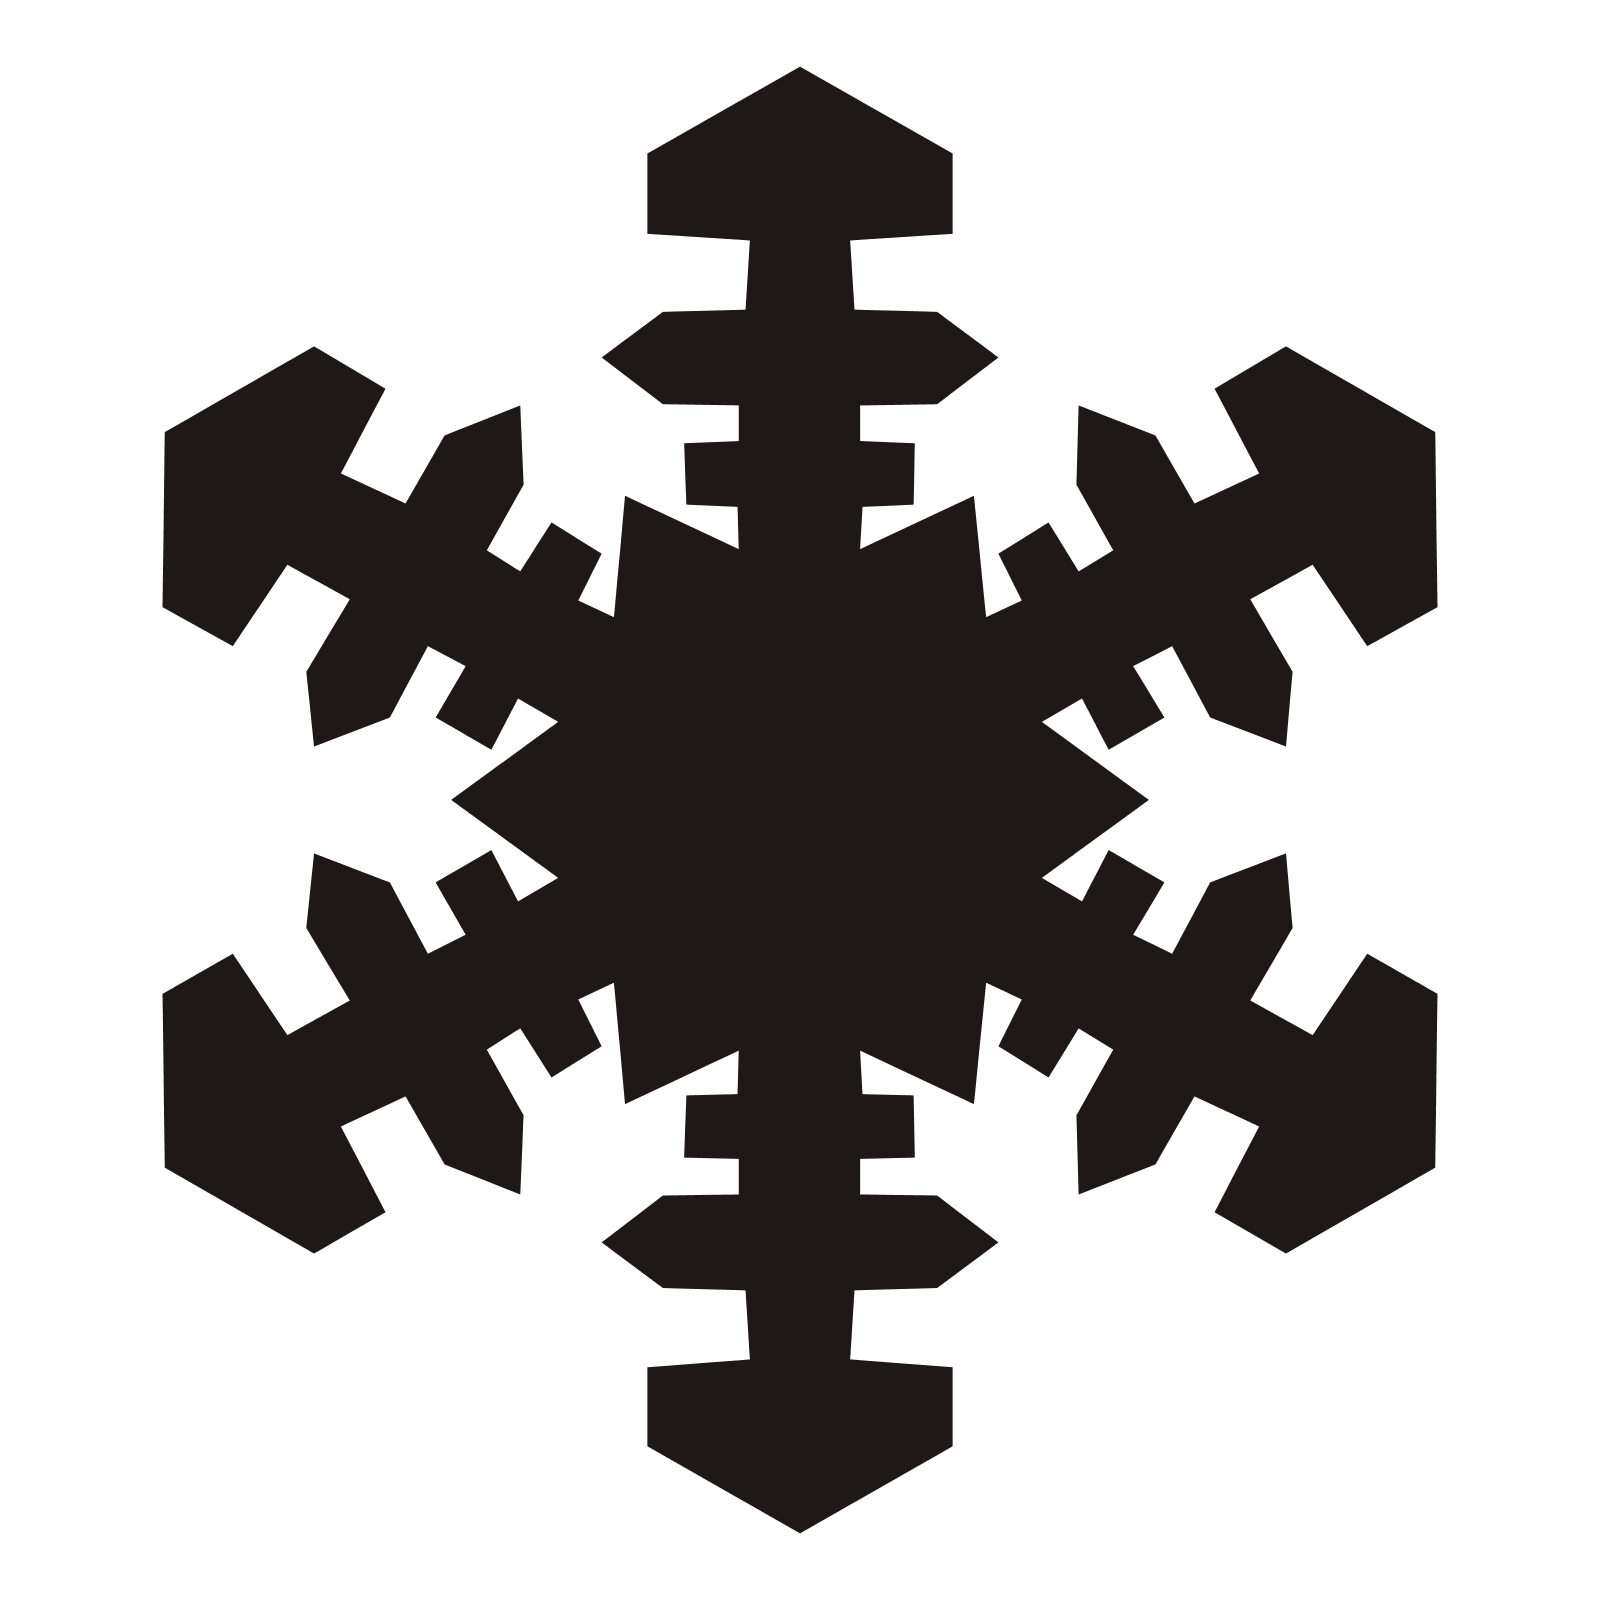 Icy Snowflake PNG Image